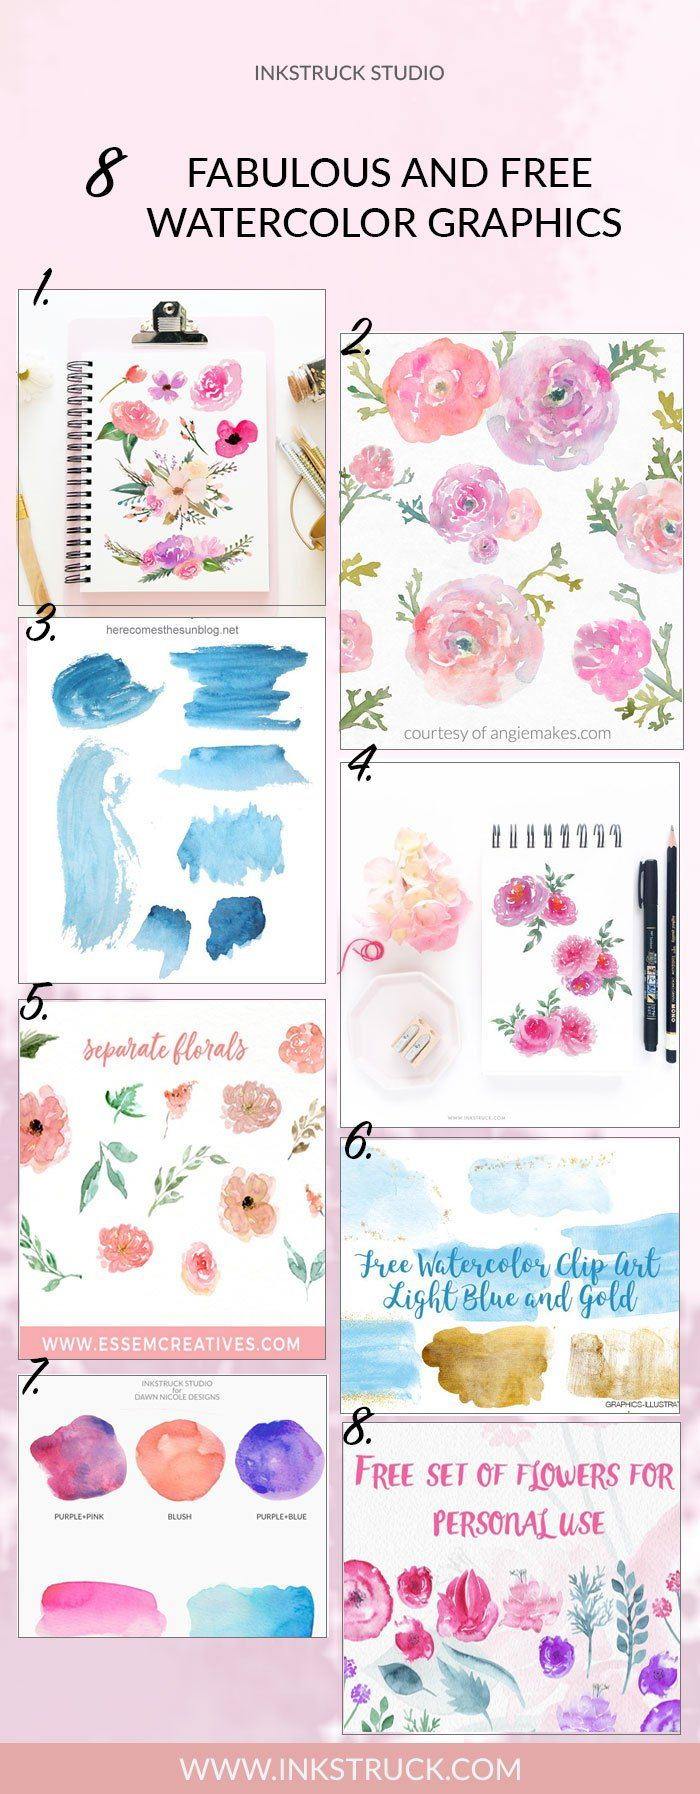 8 Free Watercolor Graphics Roundup Watercolor Art Free